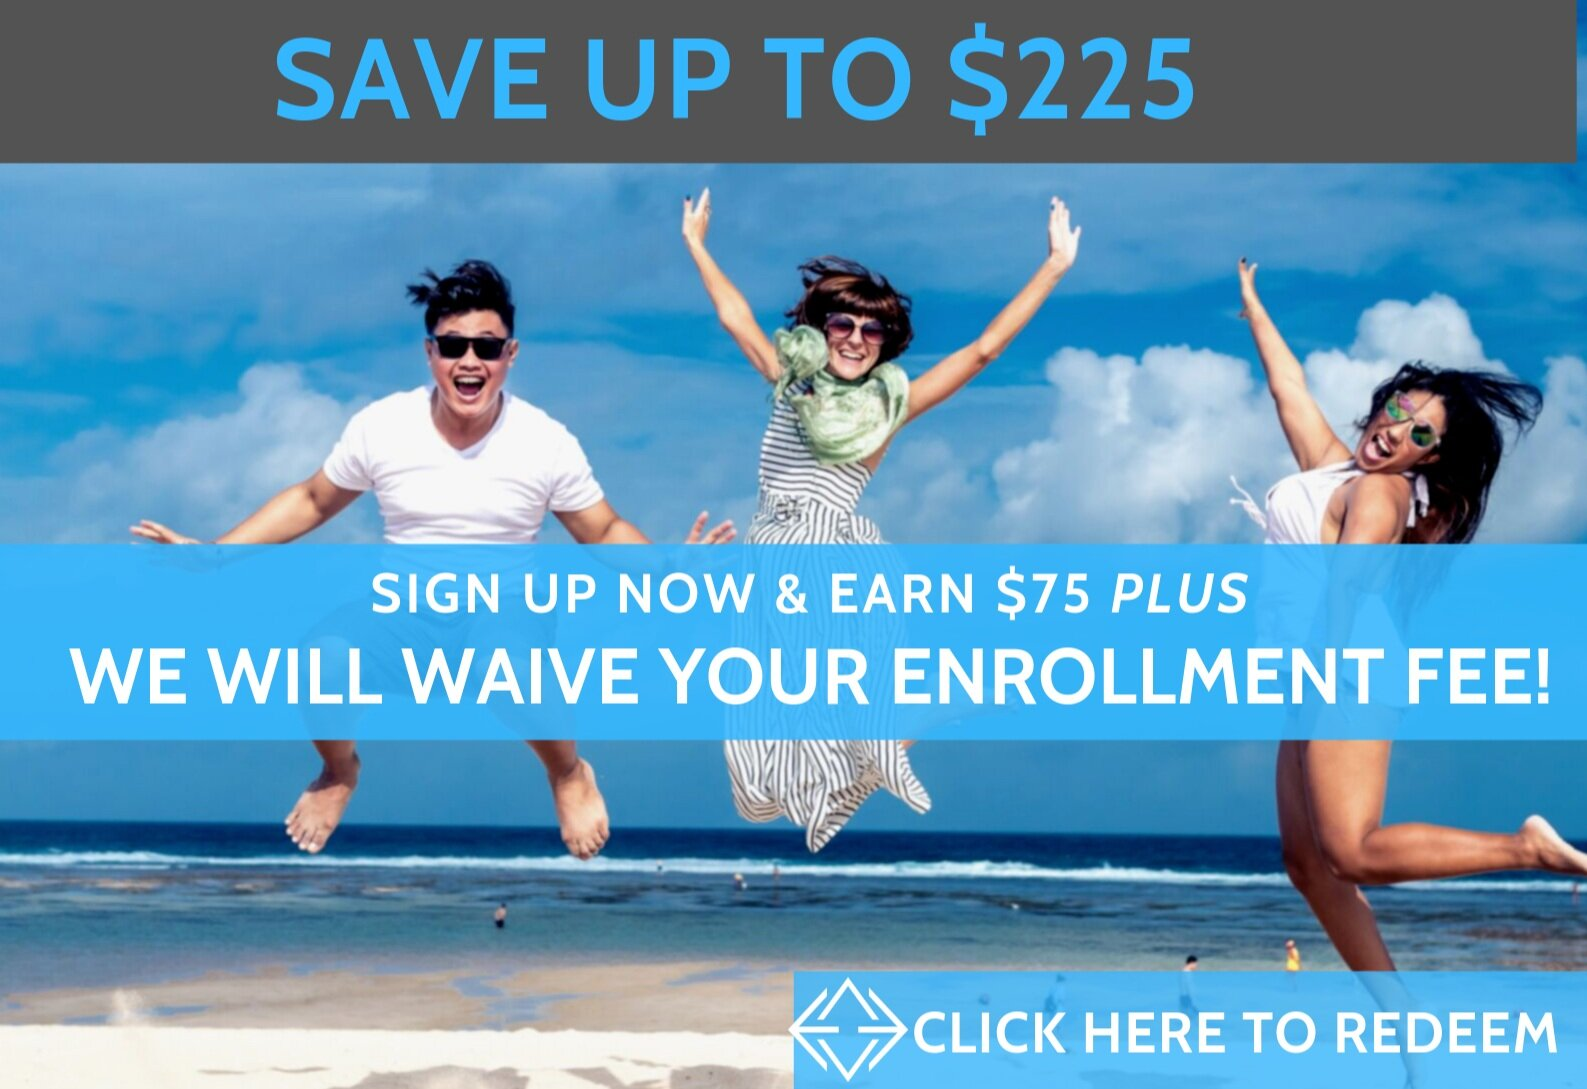 ENROLL TODAY AND START ELEVATING YOUR HEALTH! FOR NEW MEMBERS, RECEIVE $75 AND WAIVED ENROLLMENT (A SAVINGS OF UP TO $225)   IF YOU SIGN UP BETWEEN NOW AND 12/31/19.   Elevated Health gift card credit of $75 valid 1 per household. Can only be redeemed once. Not valid for dependent & college student memberships. Questions? Contact us at    hello@elevatedhealth.md   .